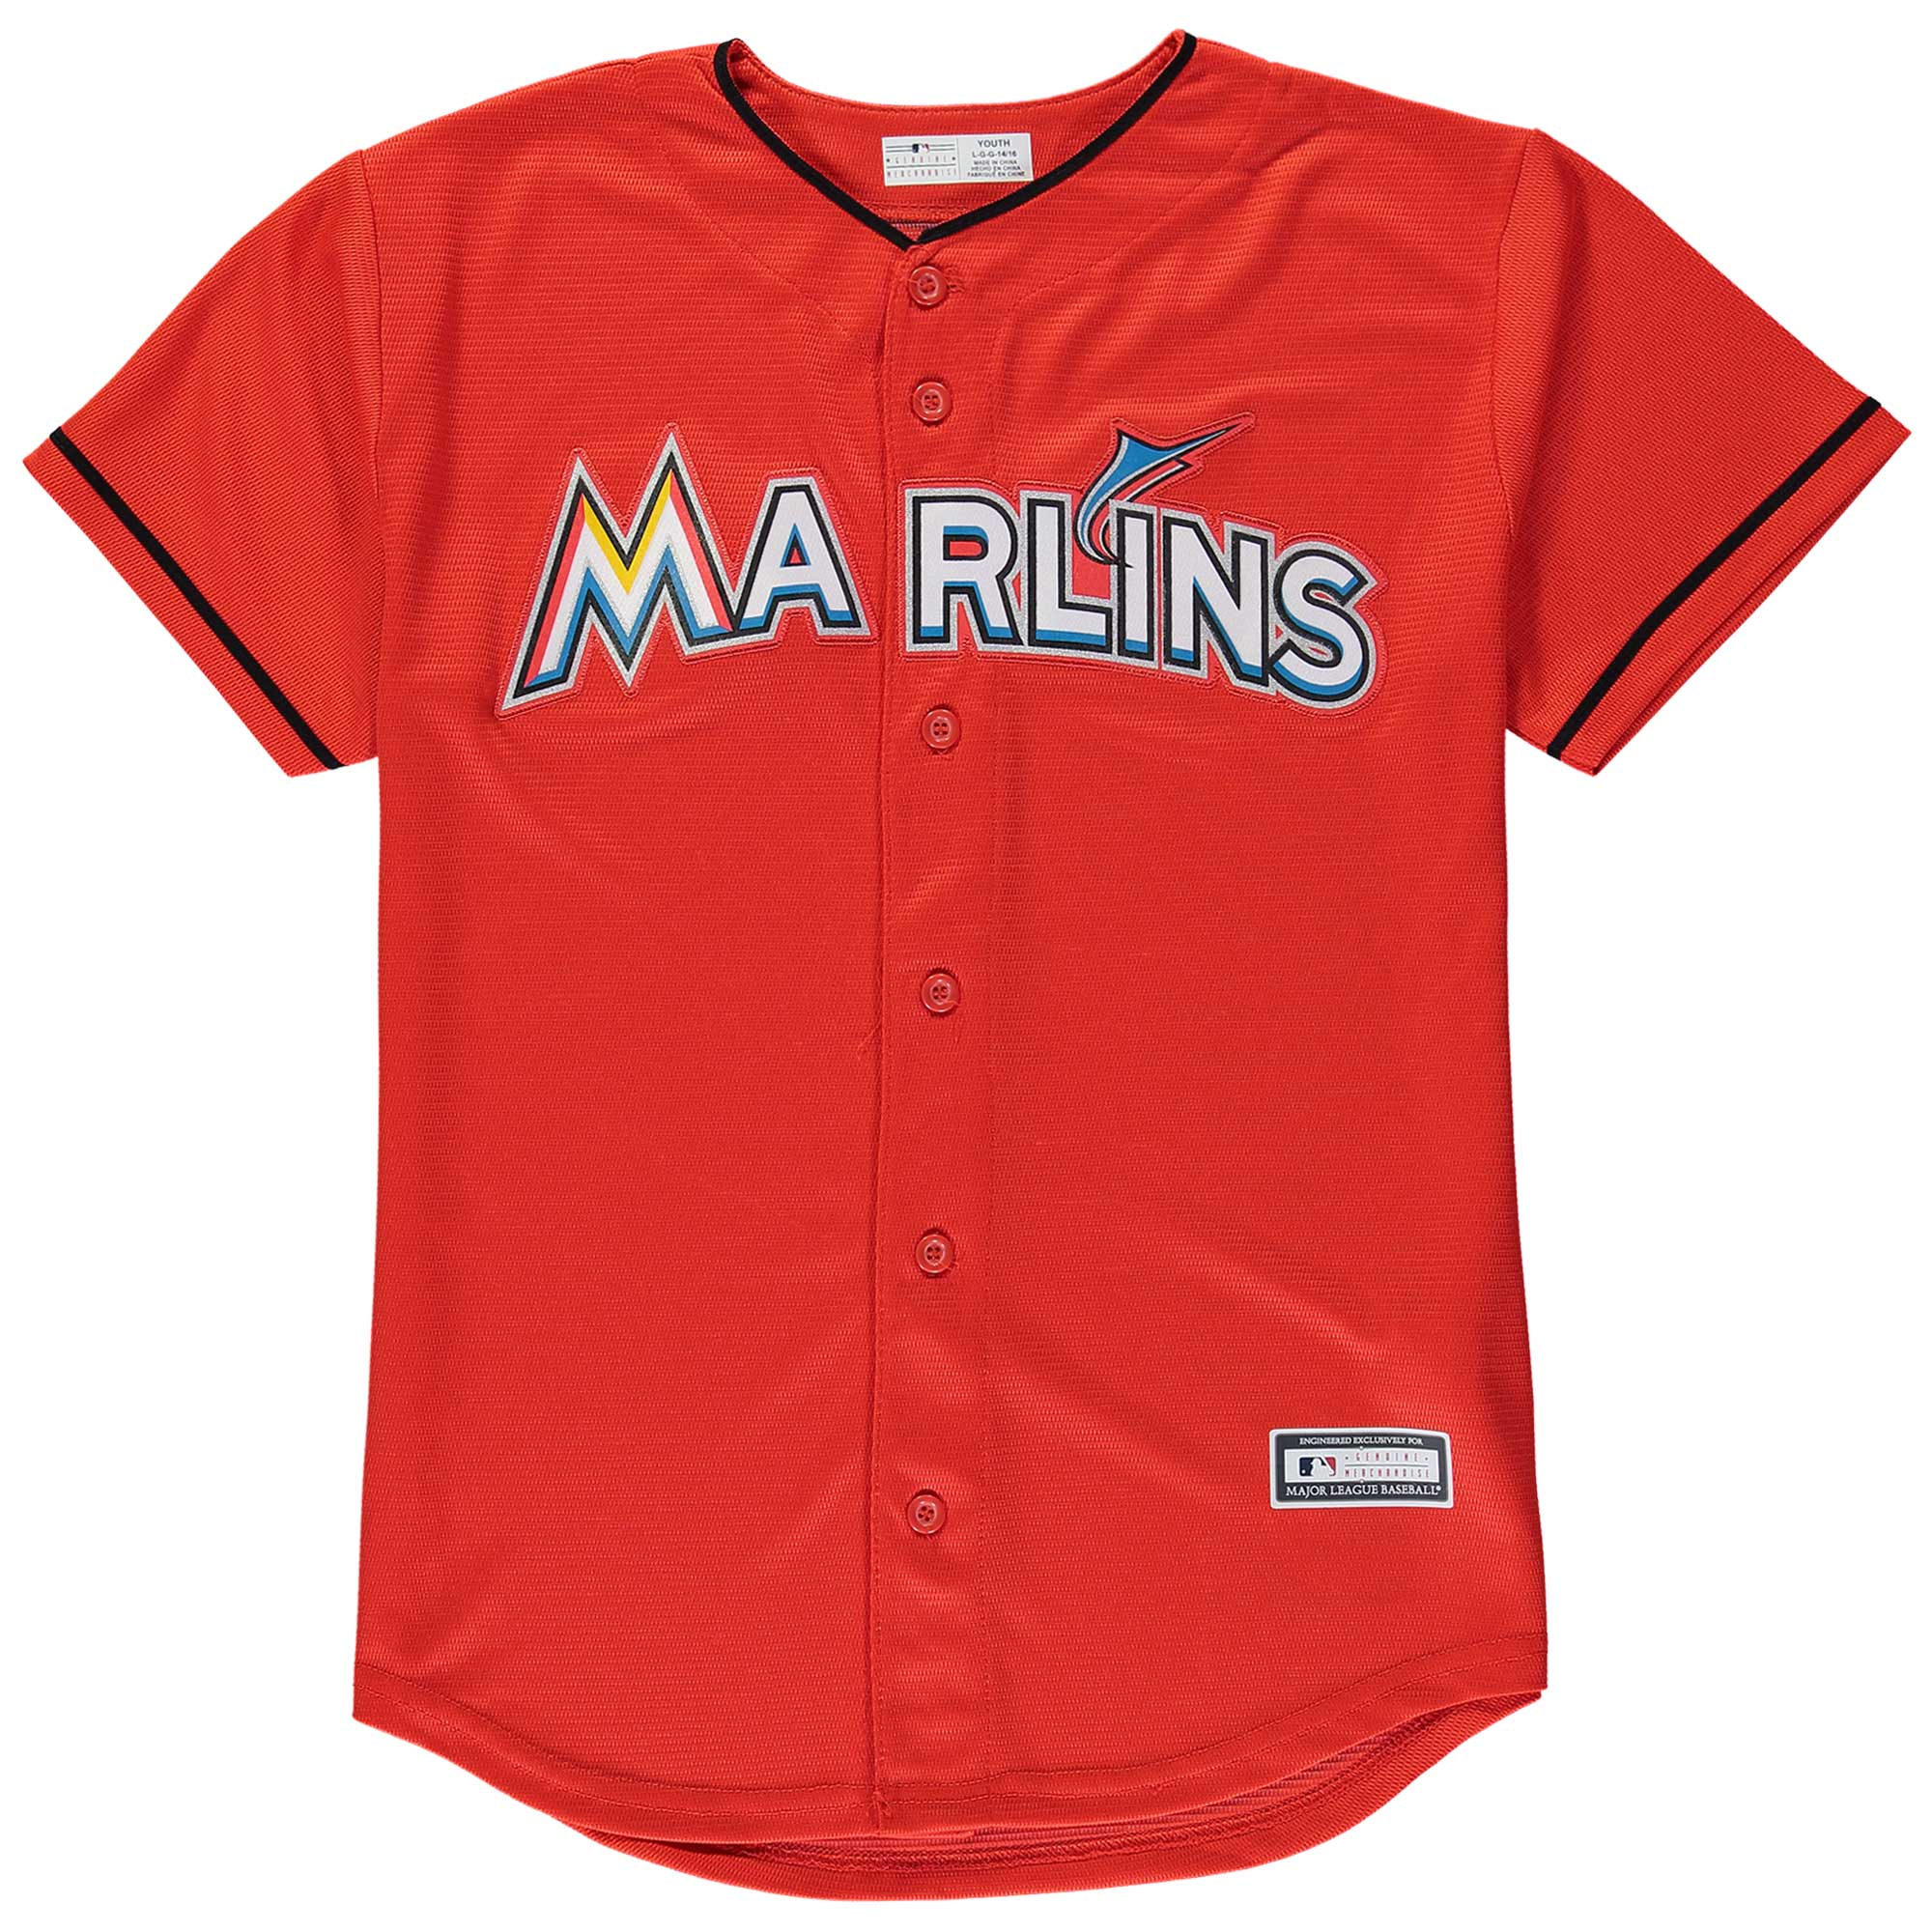 Miami Marlins Youth Replica Blank Team Jersey - Orange